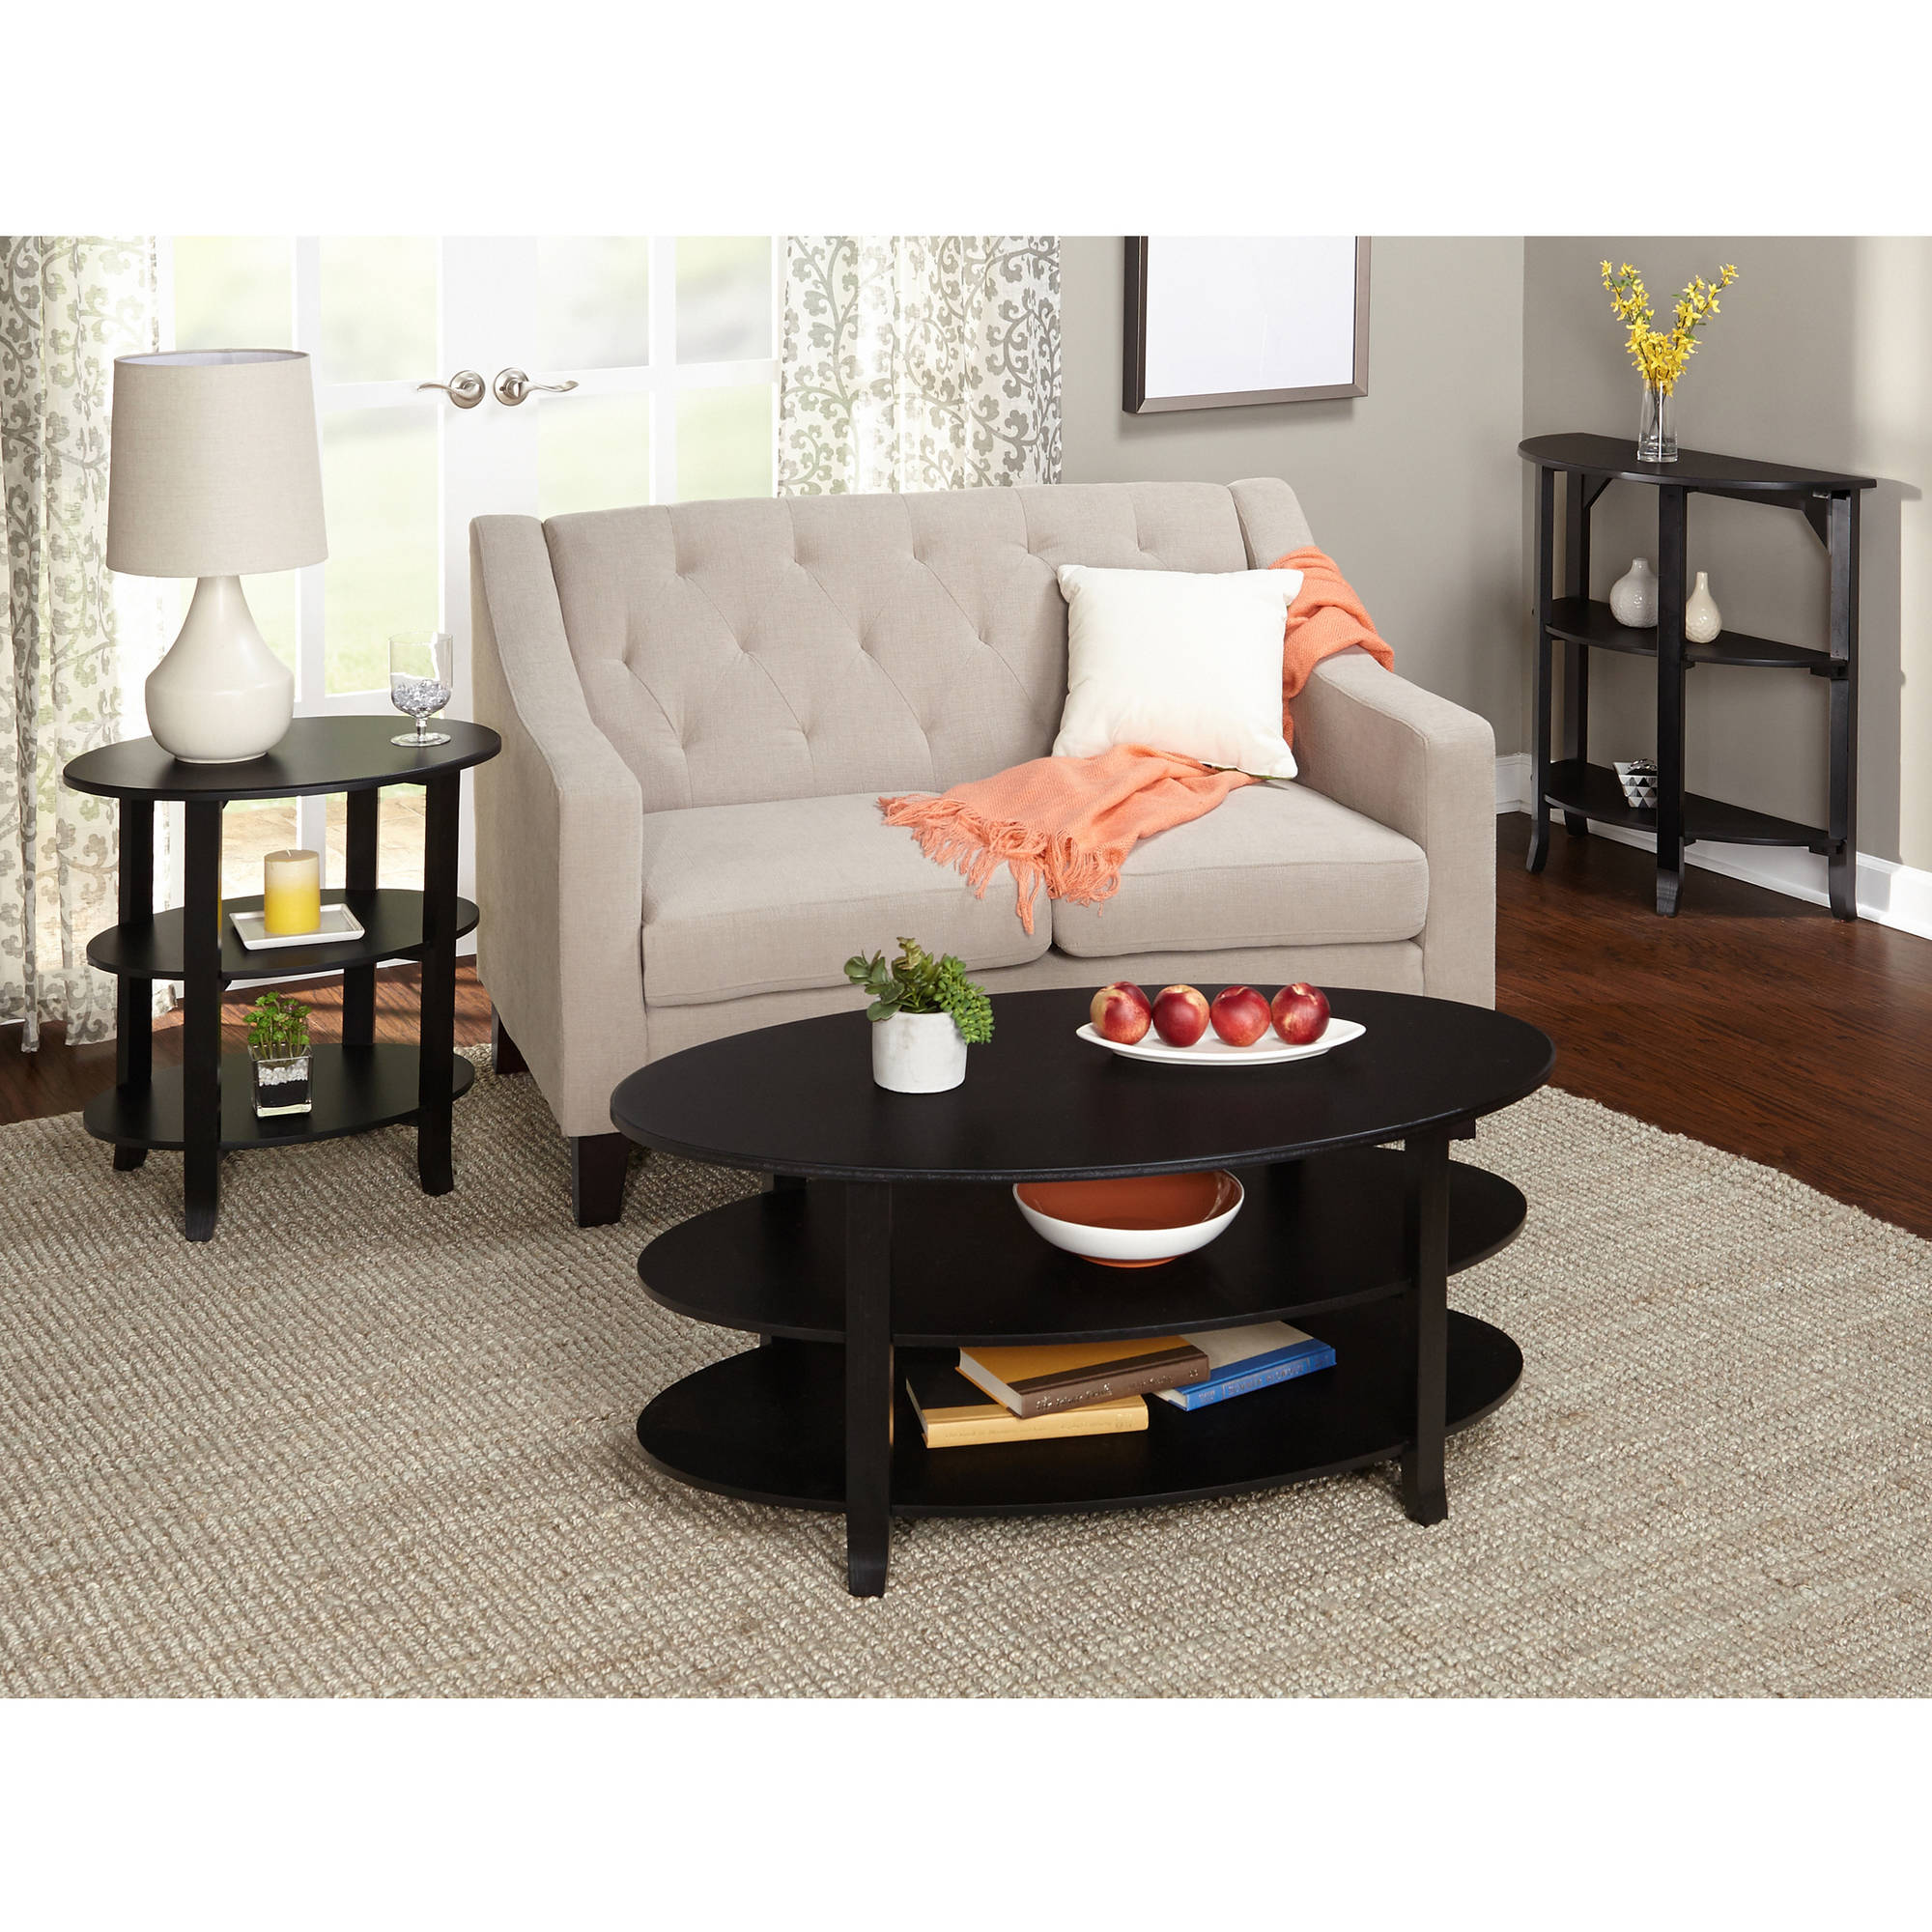 London 3 Tier Coffee Table Multiple Finishes Walmart